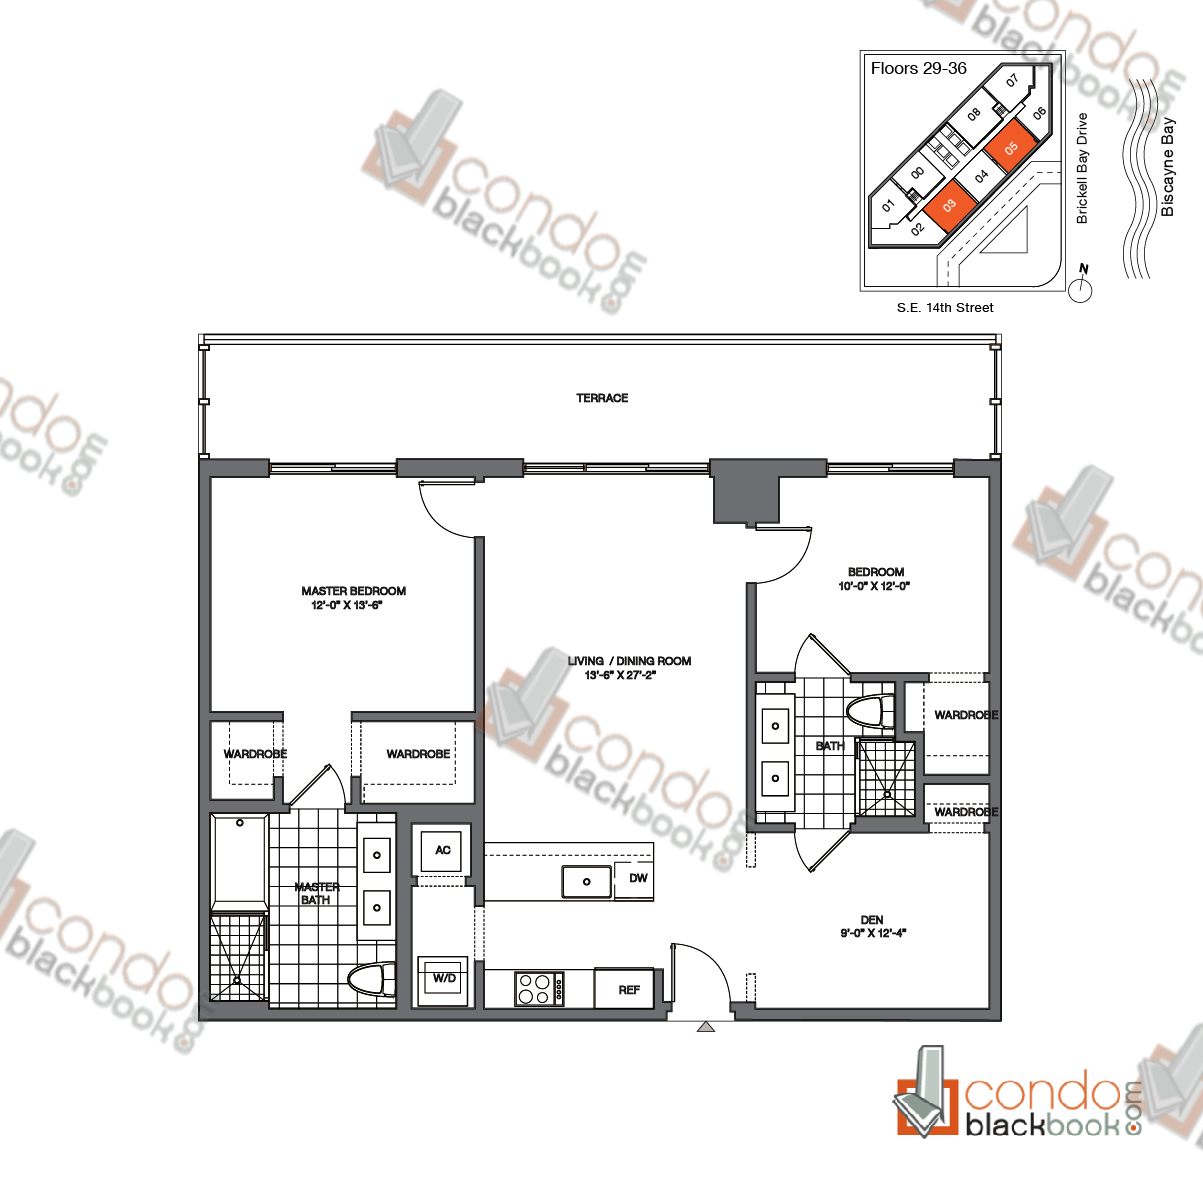 Floor plan for Brickell House Brickell Miami, model B2_29-36, line 03, 05, 2/2.5 + Den bedrooms, 1,183 sq ft